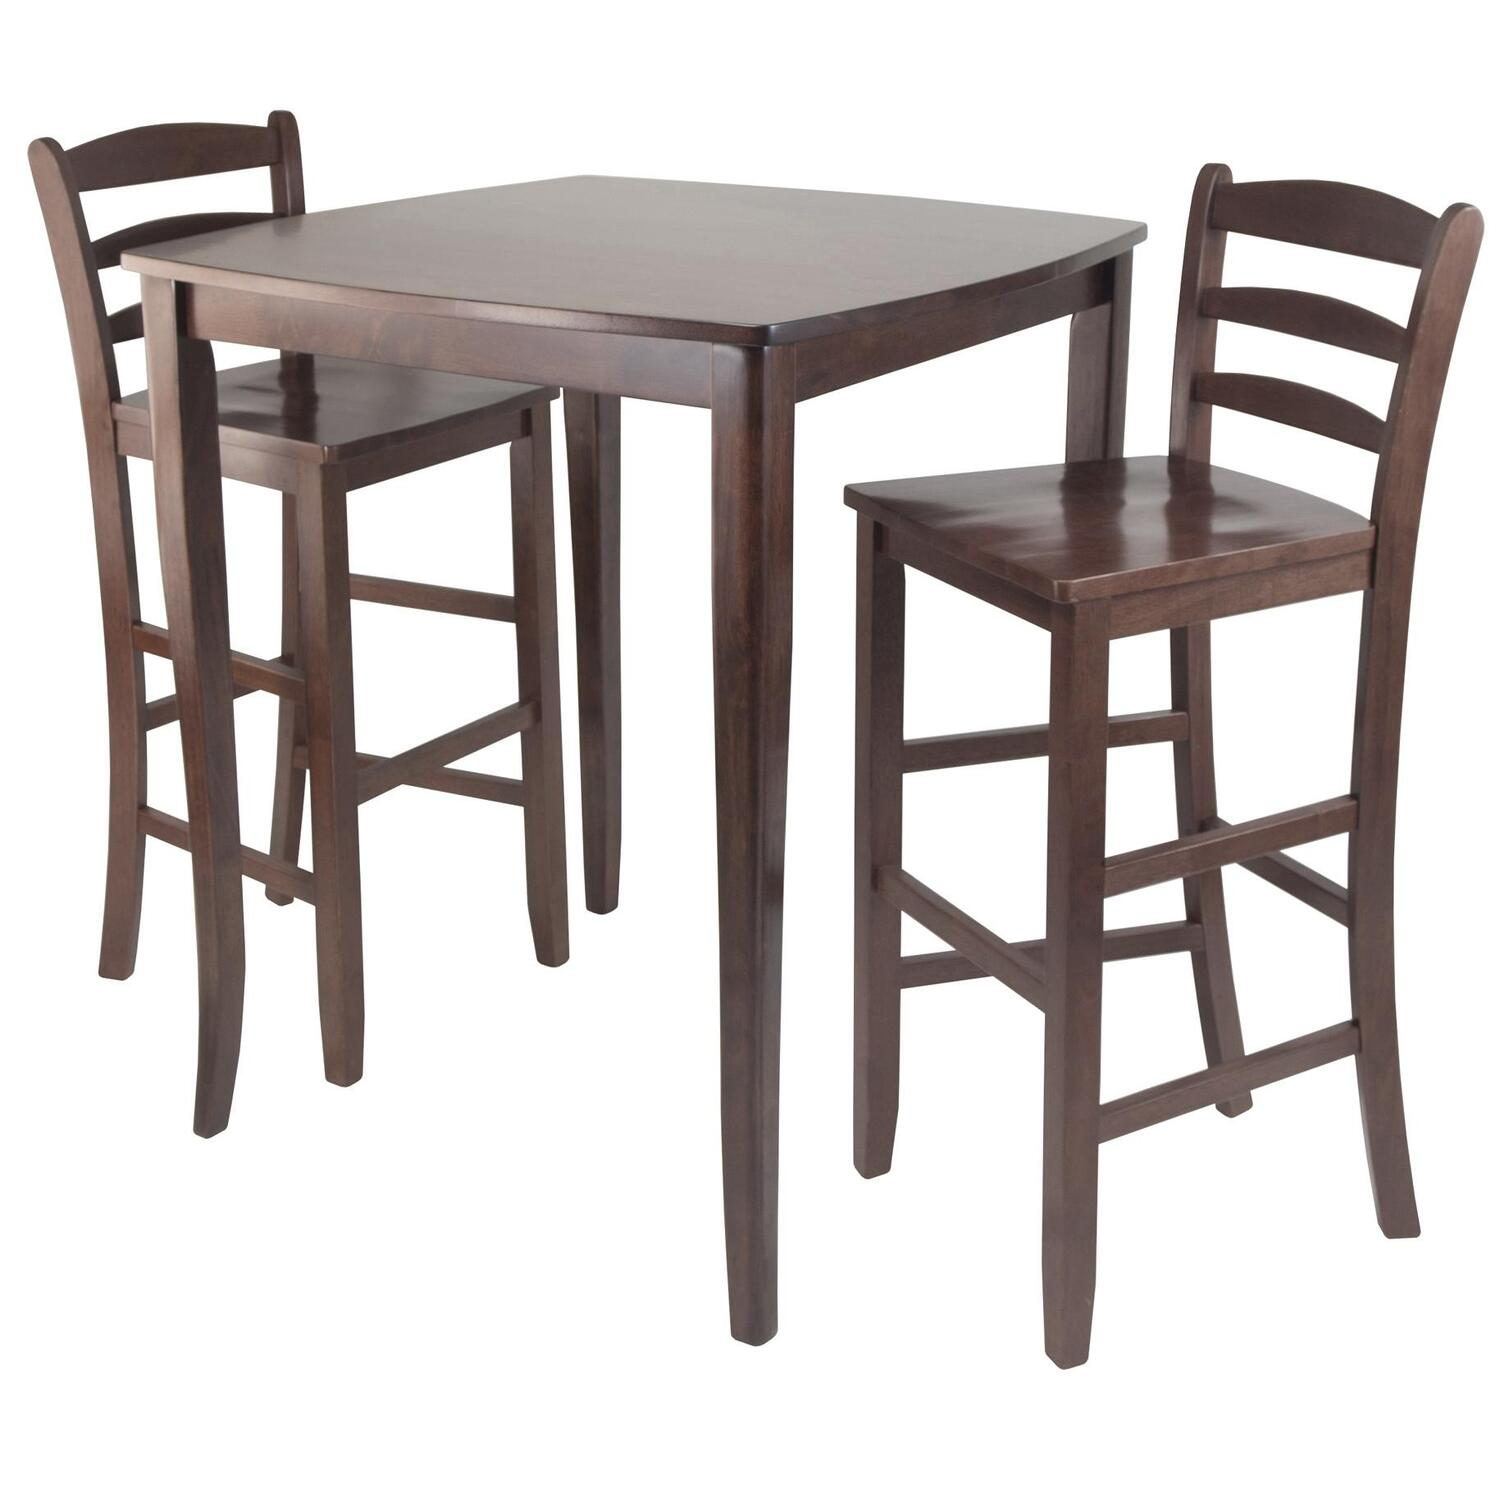 3pc inglewood high pub dining table with ladder back stool ojcommerce. Black Bedroom Furniture Sets. Home Design Ideas